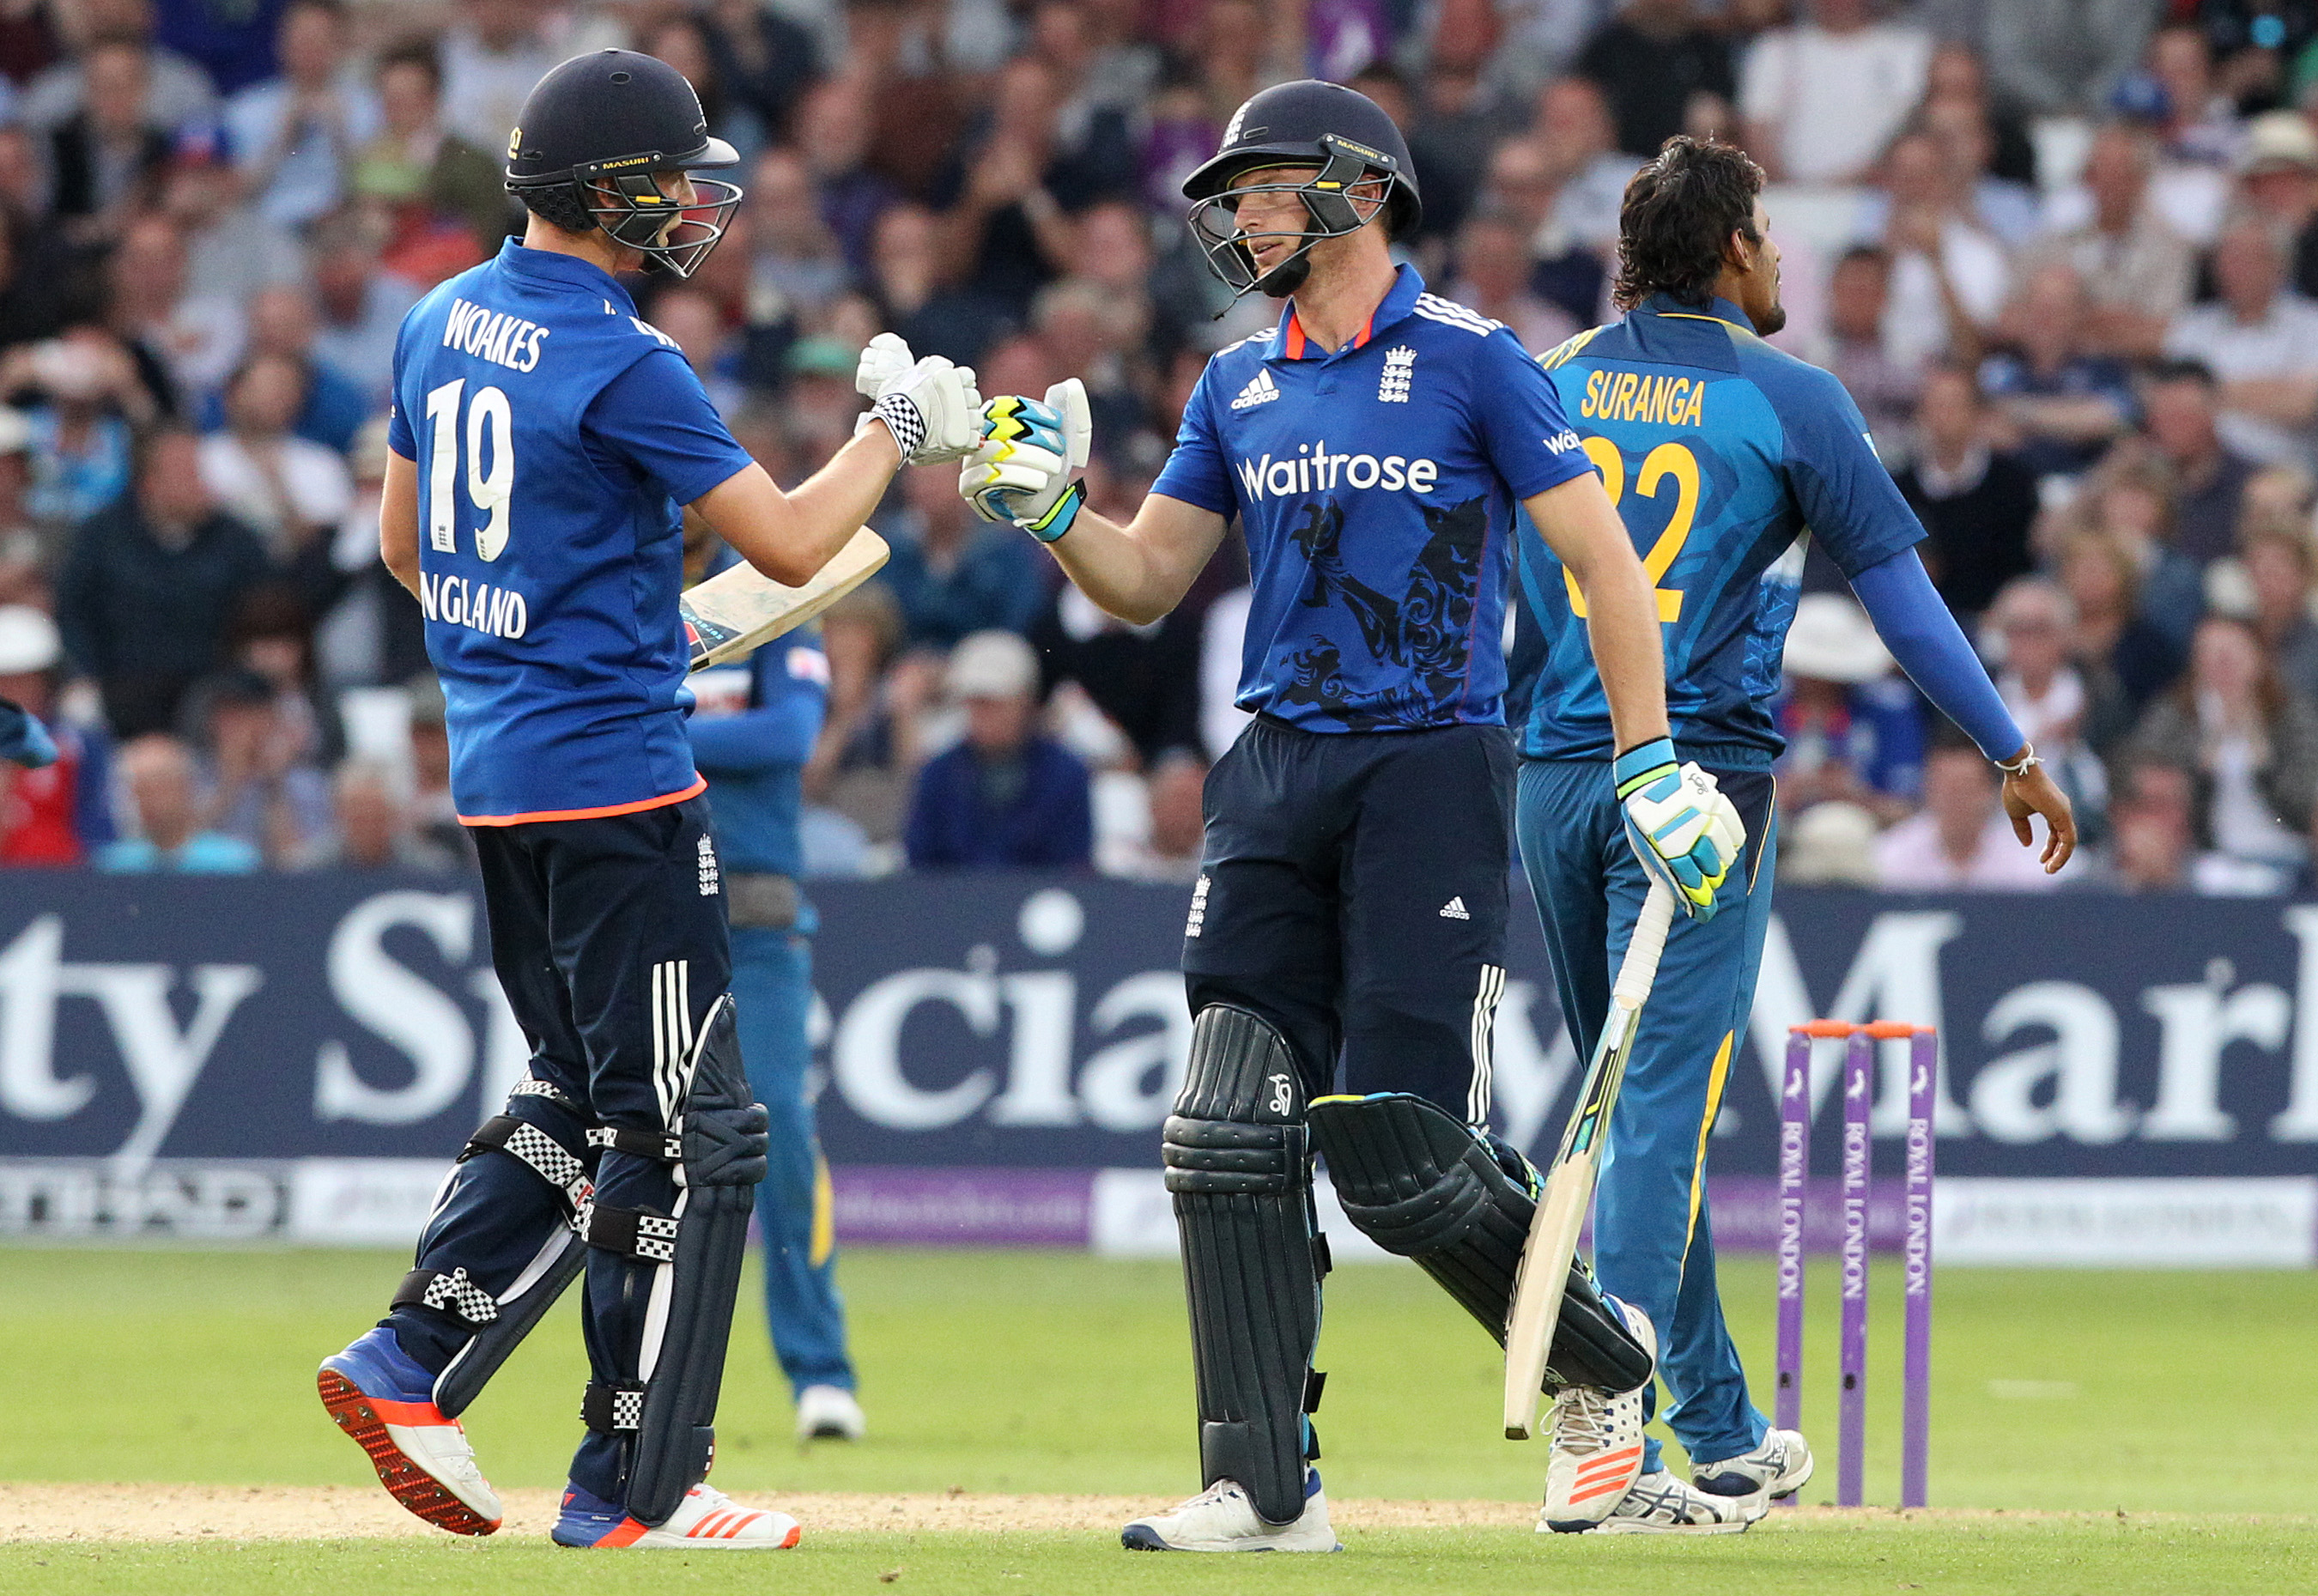 England batsman Jos Buttler gestures to England's Chris Woakes (L) during play in the first one day international (ODI) cricket match between England and Sri Lanka at Trent Bridge cricket ground in Nottingham, central England, on June 21, 2016. Sri Lanka captain Angelo Mathews top-scored with 73 as his side were held to 286 for nine by England in the first one-day international in Nottingham on Tuesday. / AFP PHOTO / Lindsey PARNABY